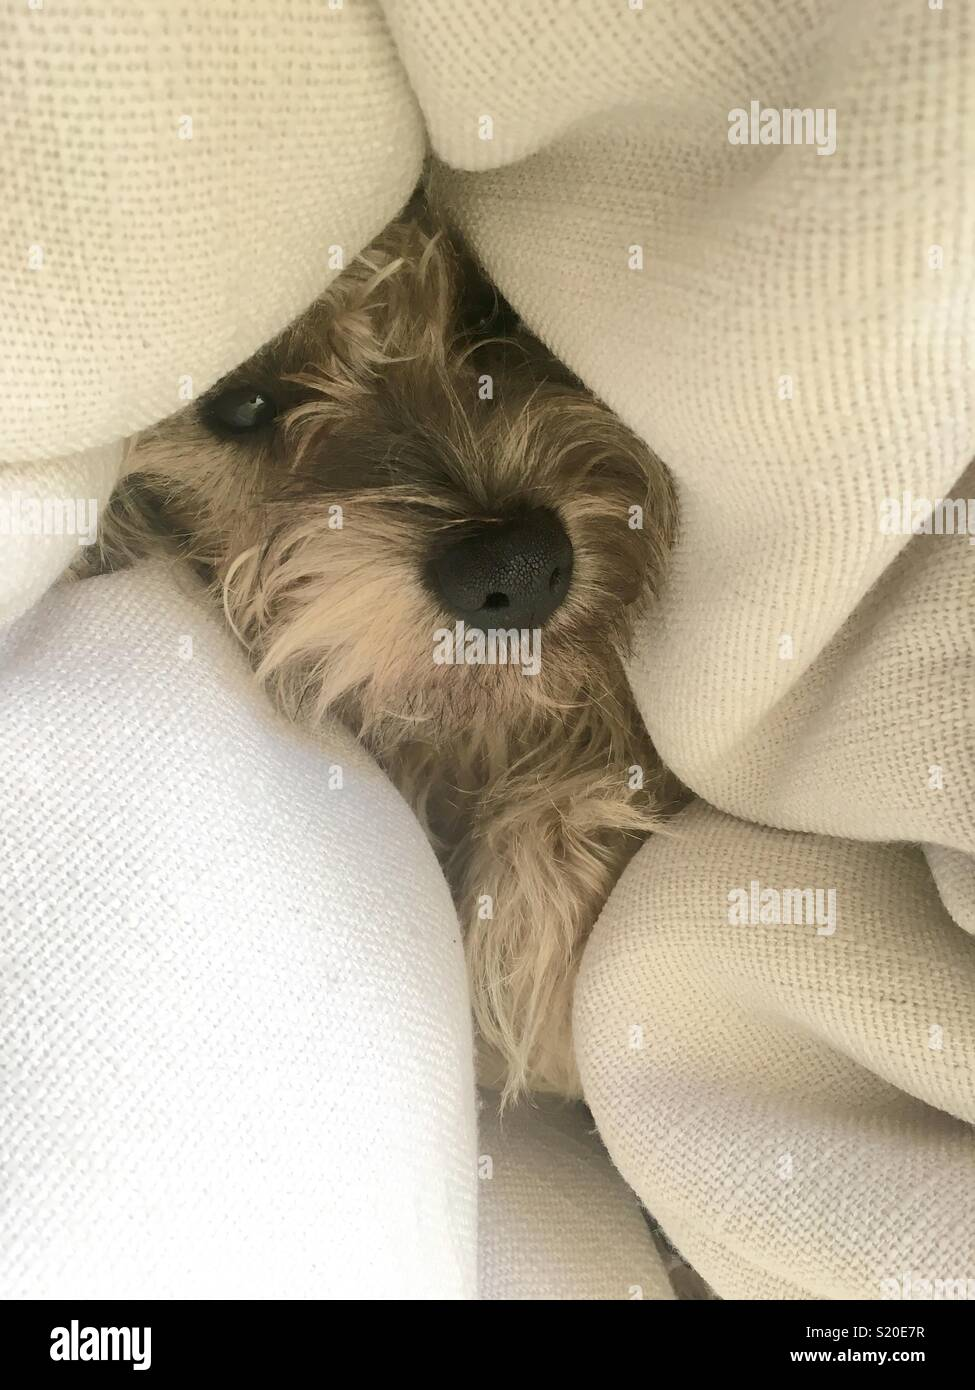 Cute Cairn Terrier puppy cuddling into a beanbag - Stock Image